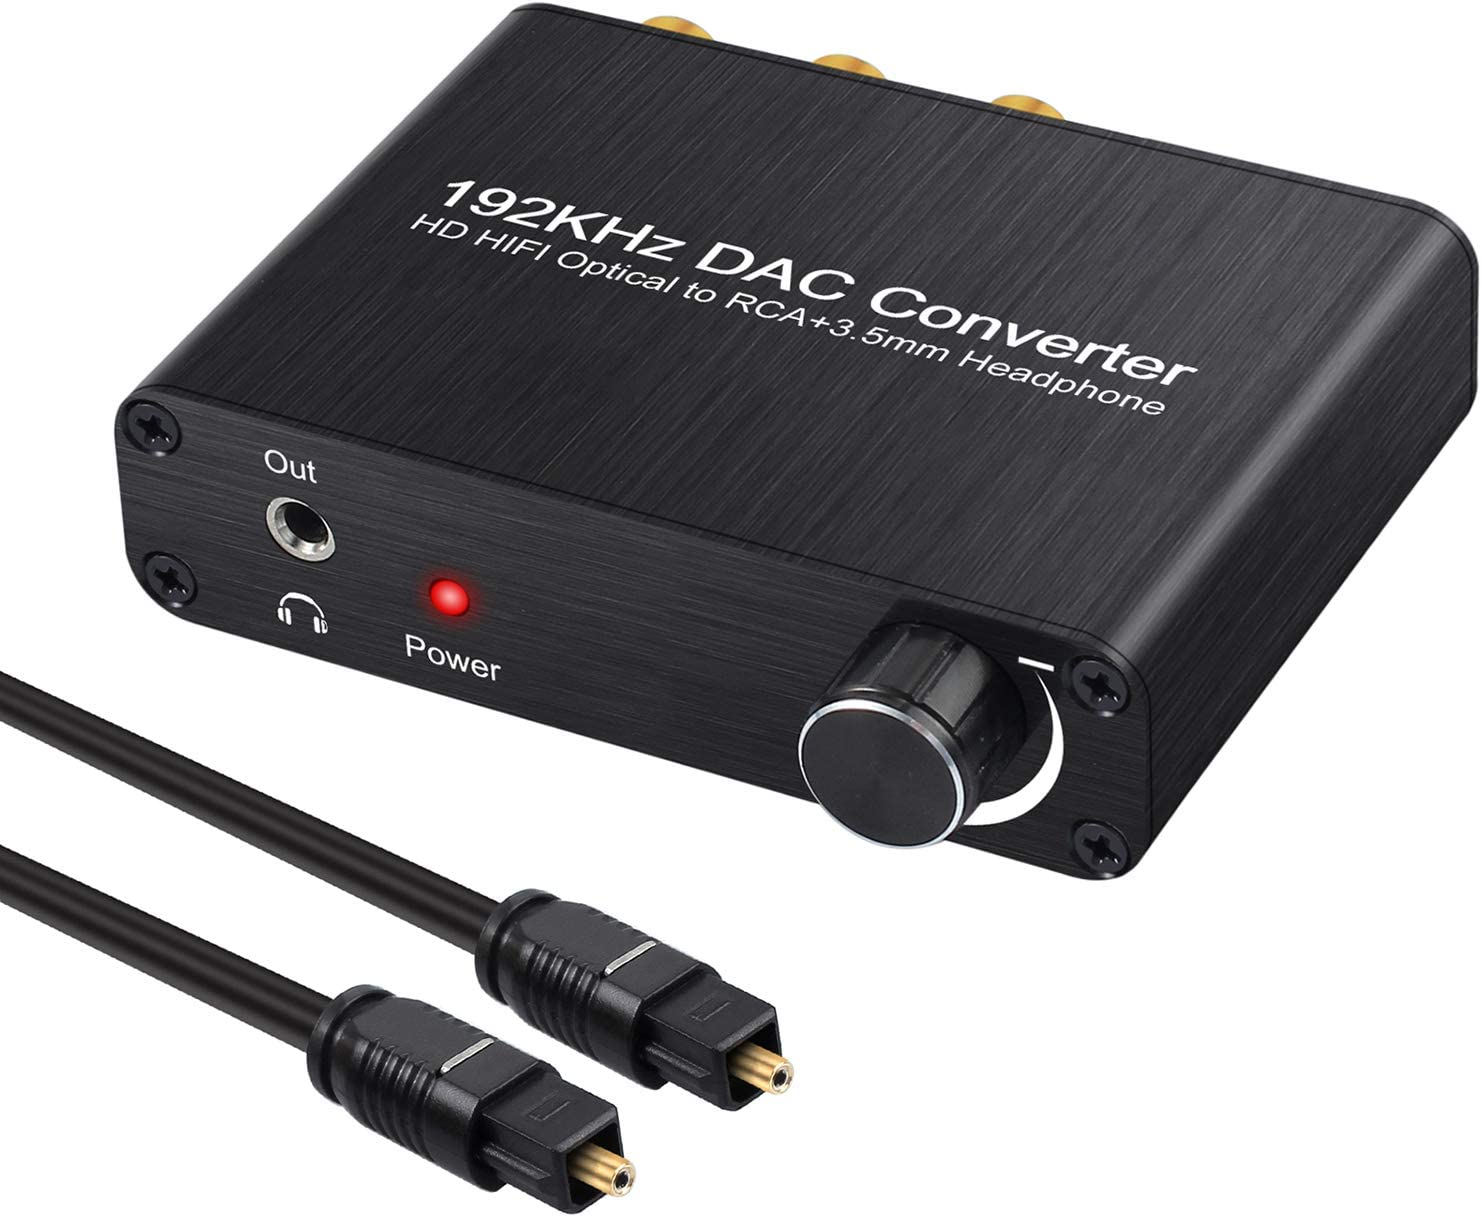 Neoteck 192kHz Digital to Analog Audio Converter Compatible with Dolby DTS/AC-3 5.1CH, Digital SPDIF Coaxial Toslink to Analog Stereo RCA L/R + 3.5mm Jack Audio Converter